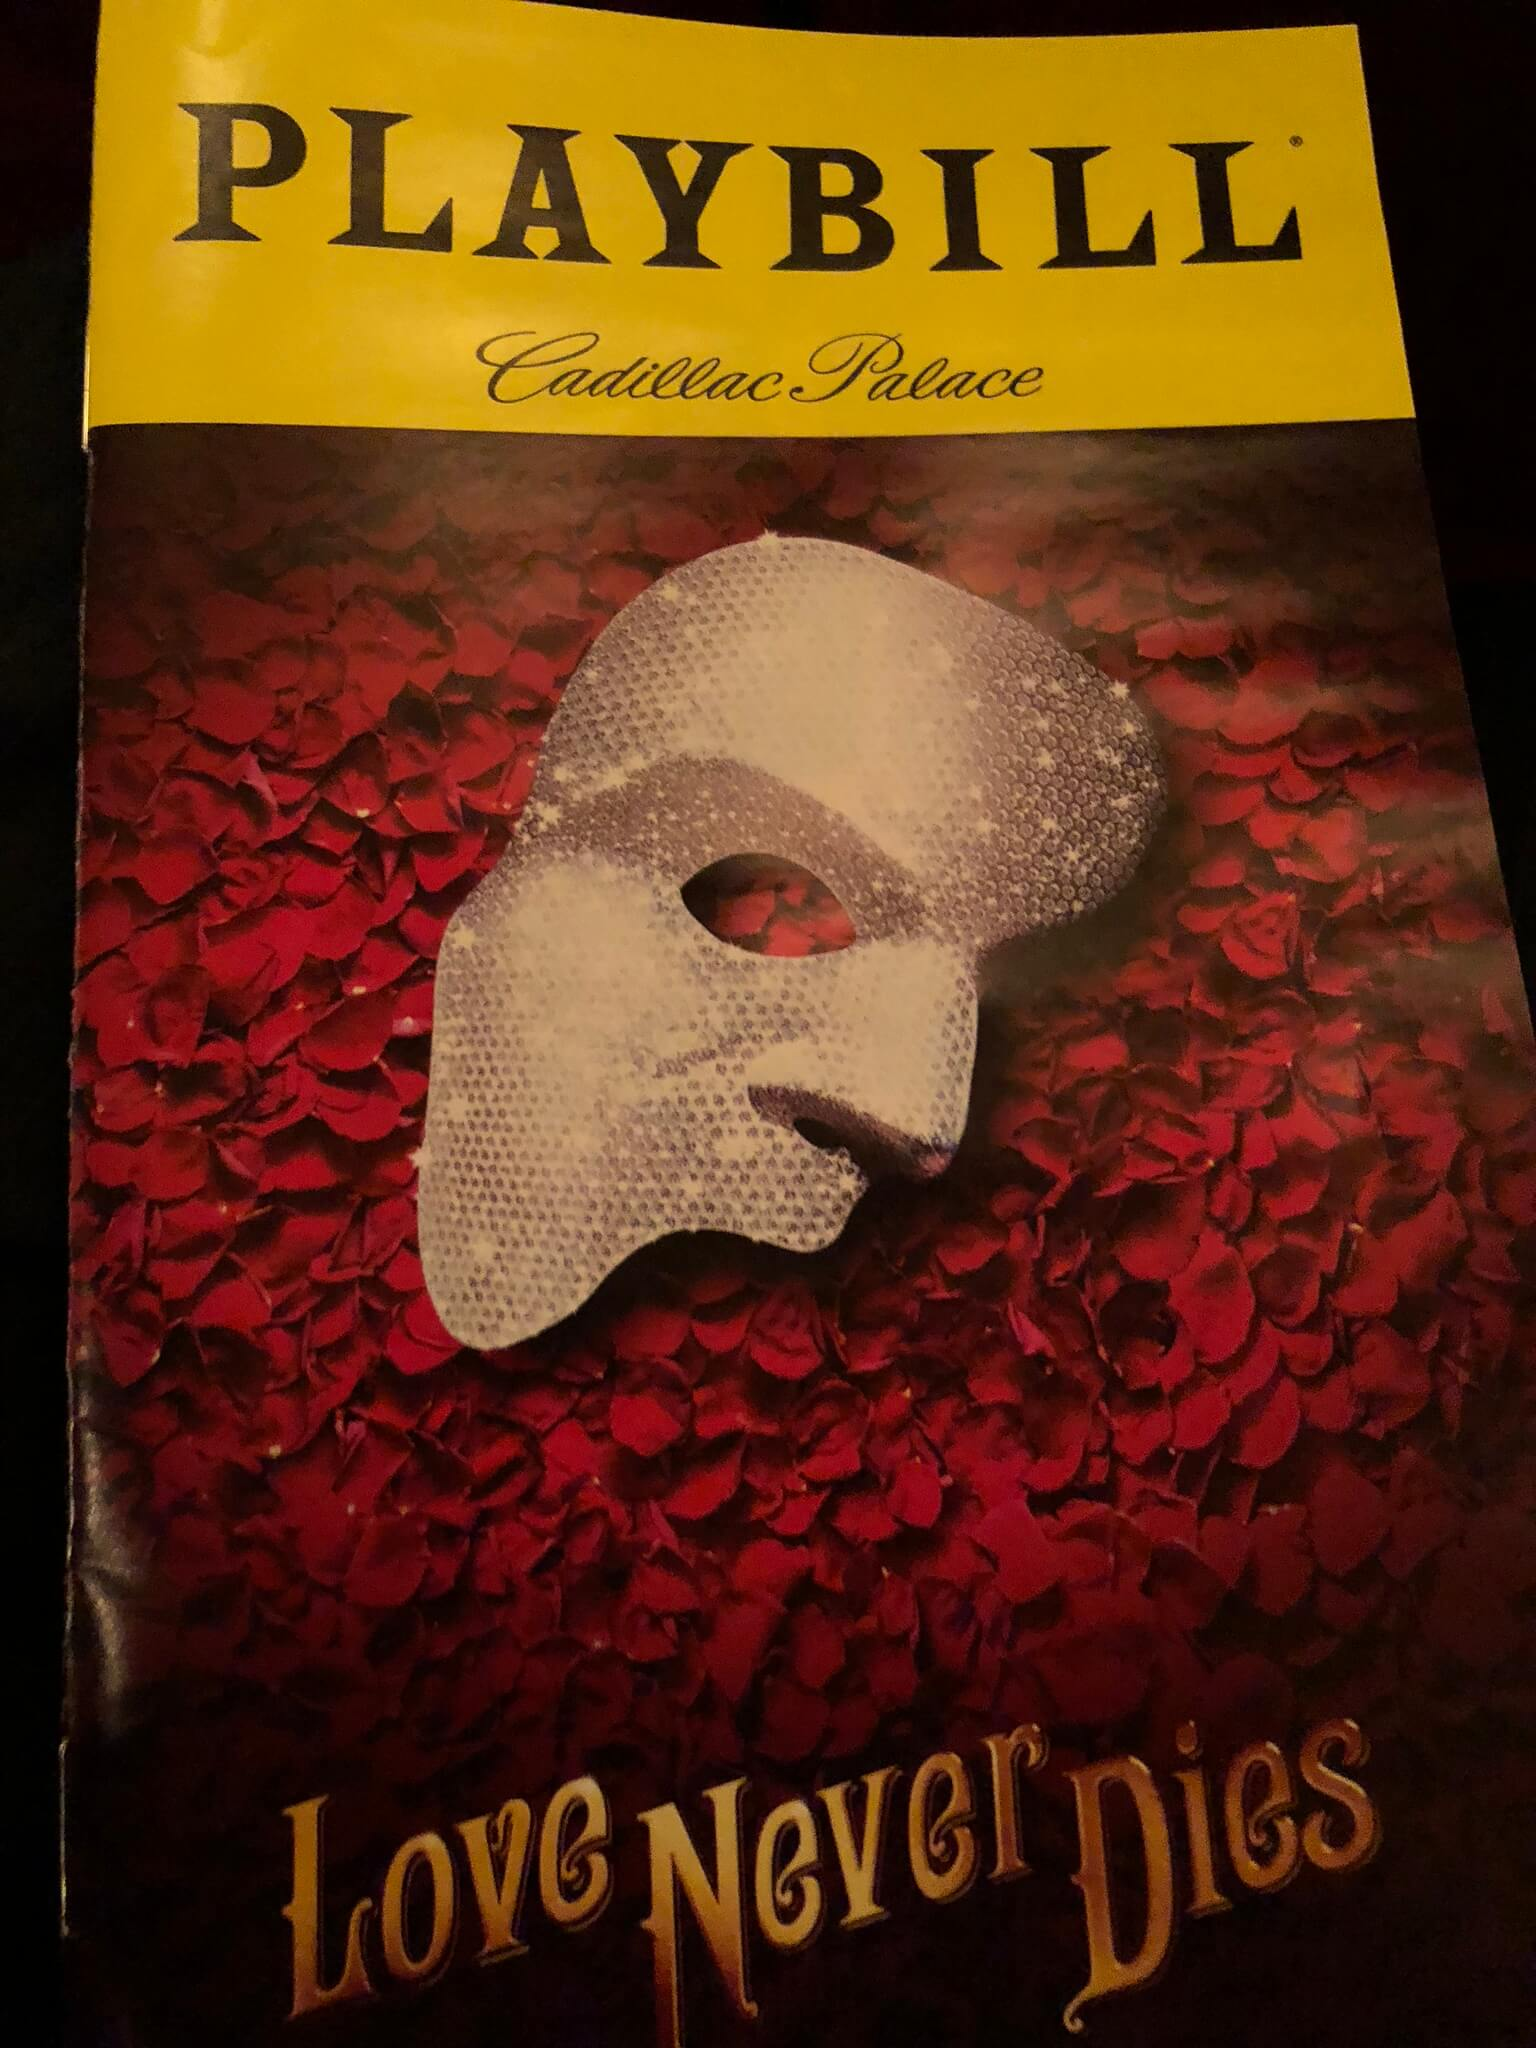 Love Never Dies continues Phantom of the Opera tale